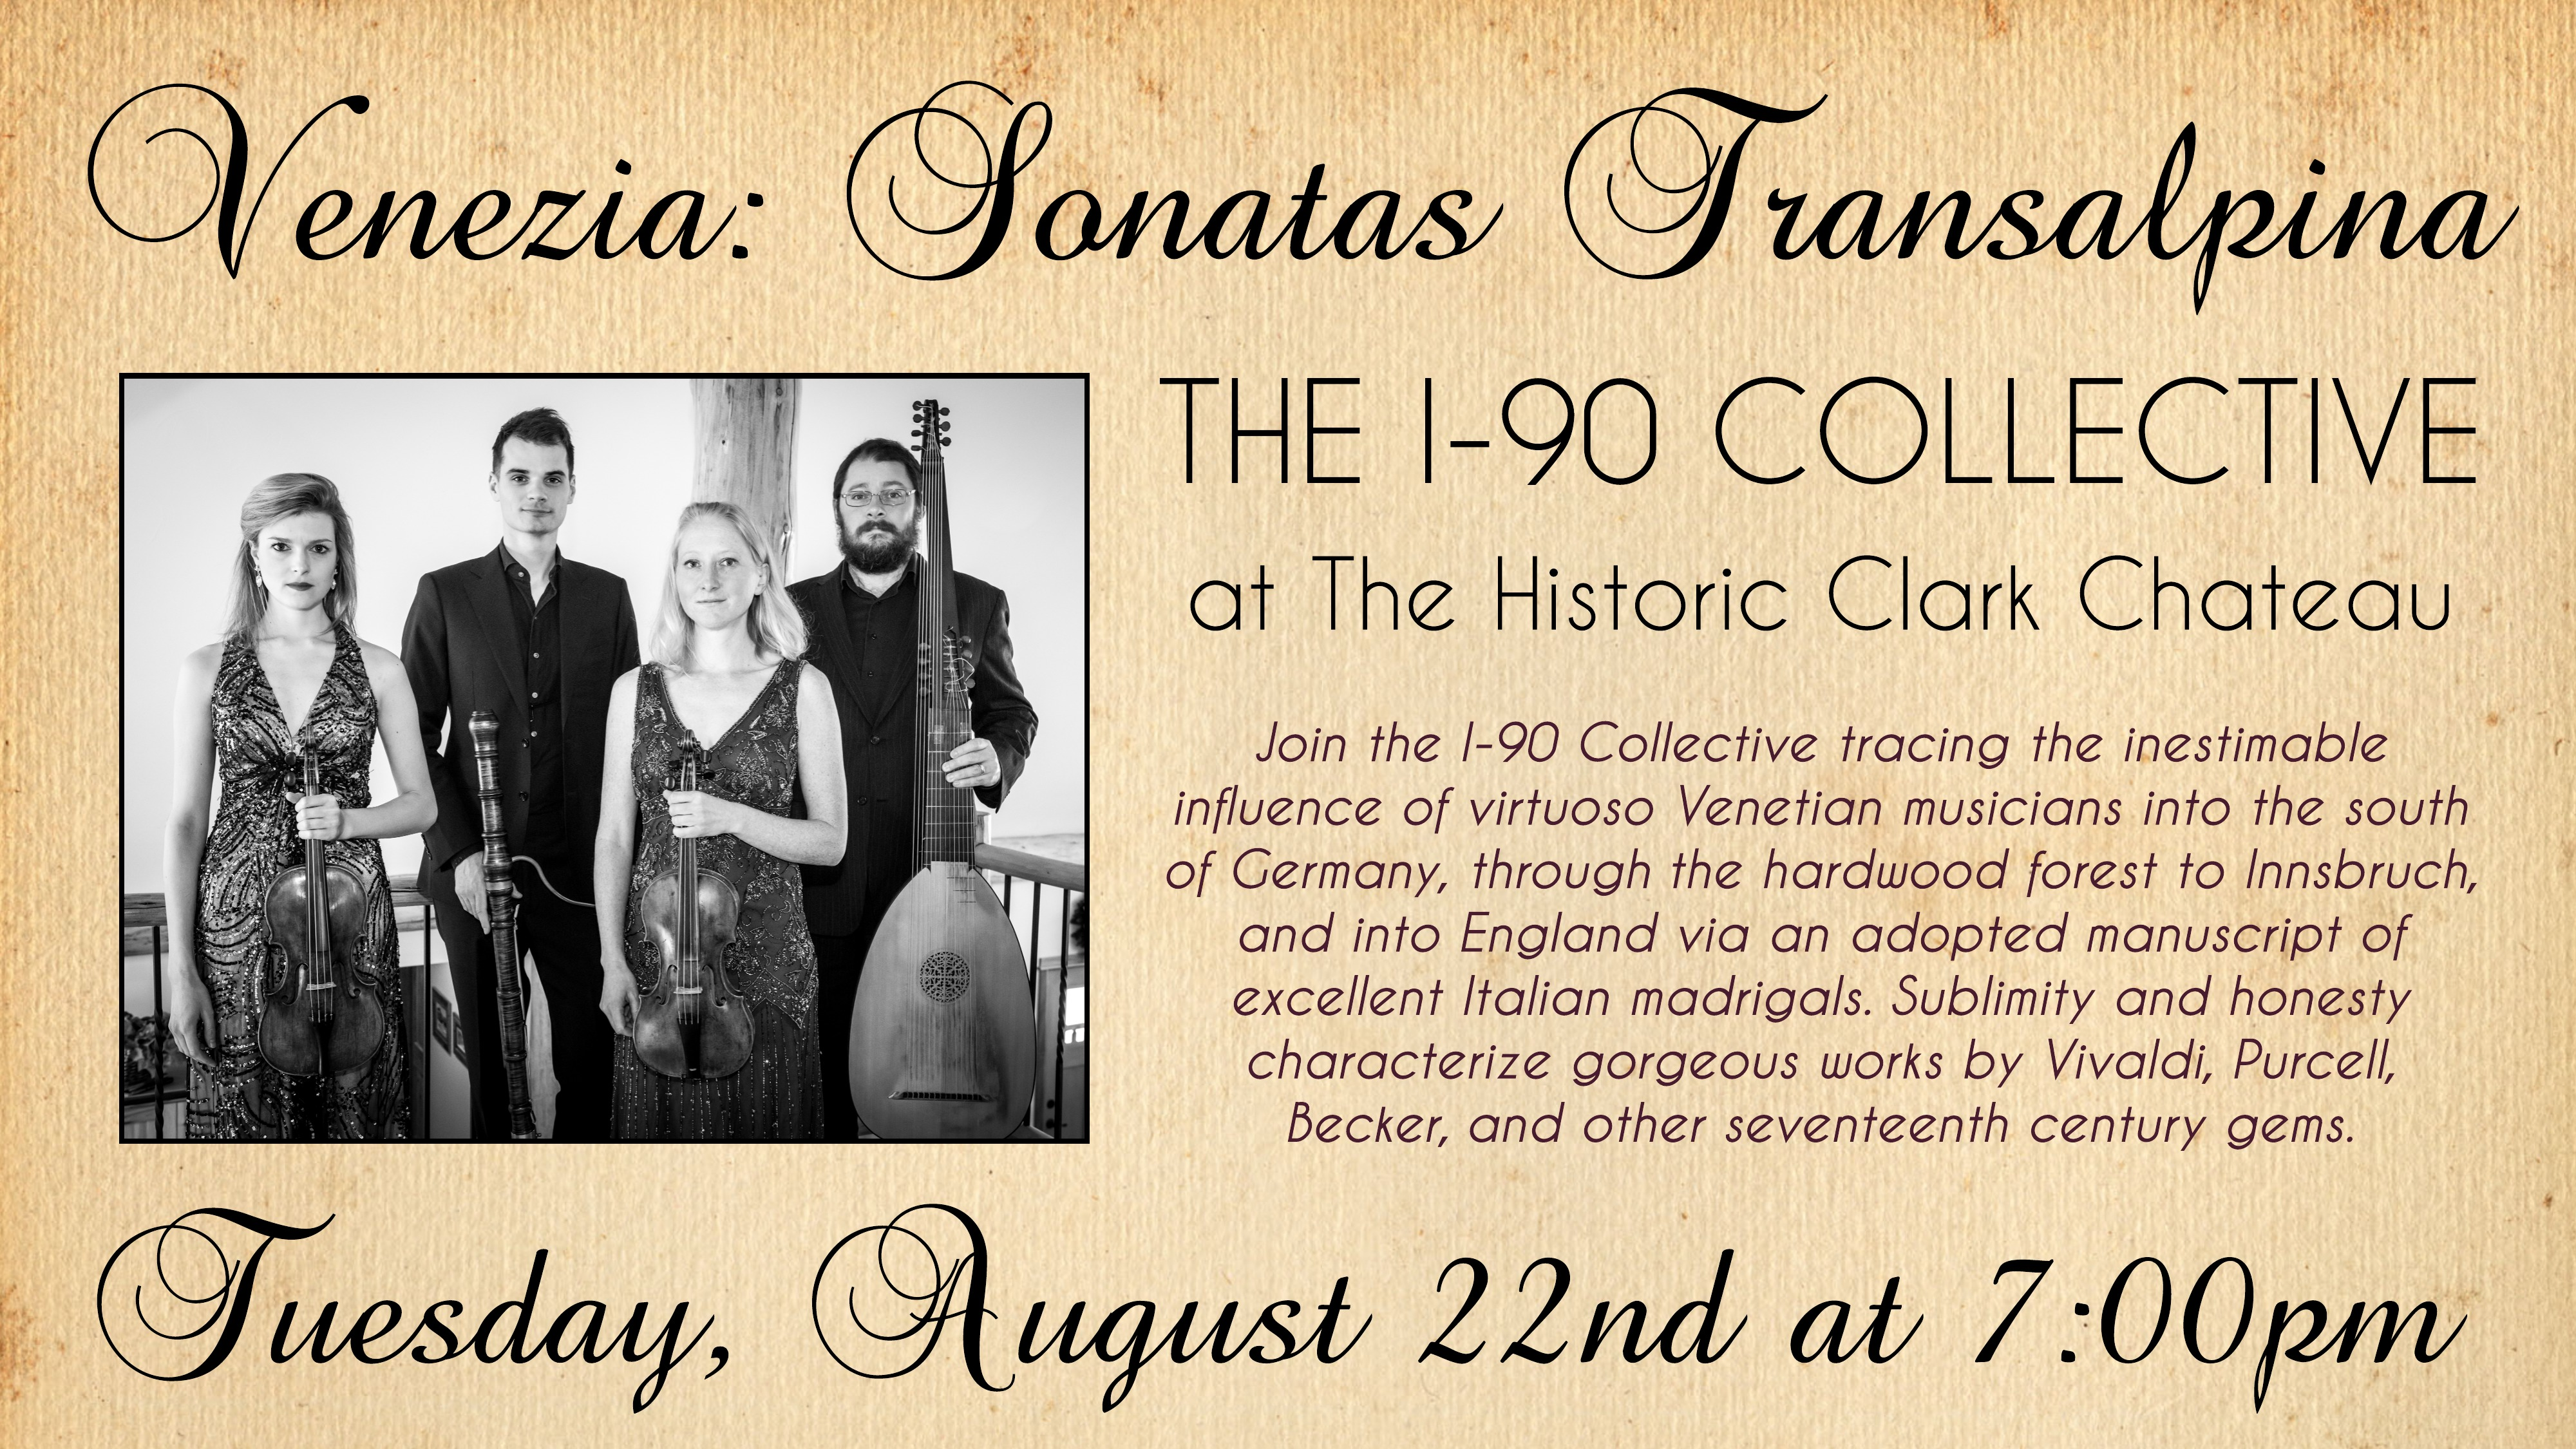 I90 Collective FB event